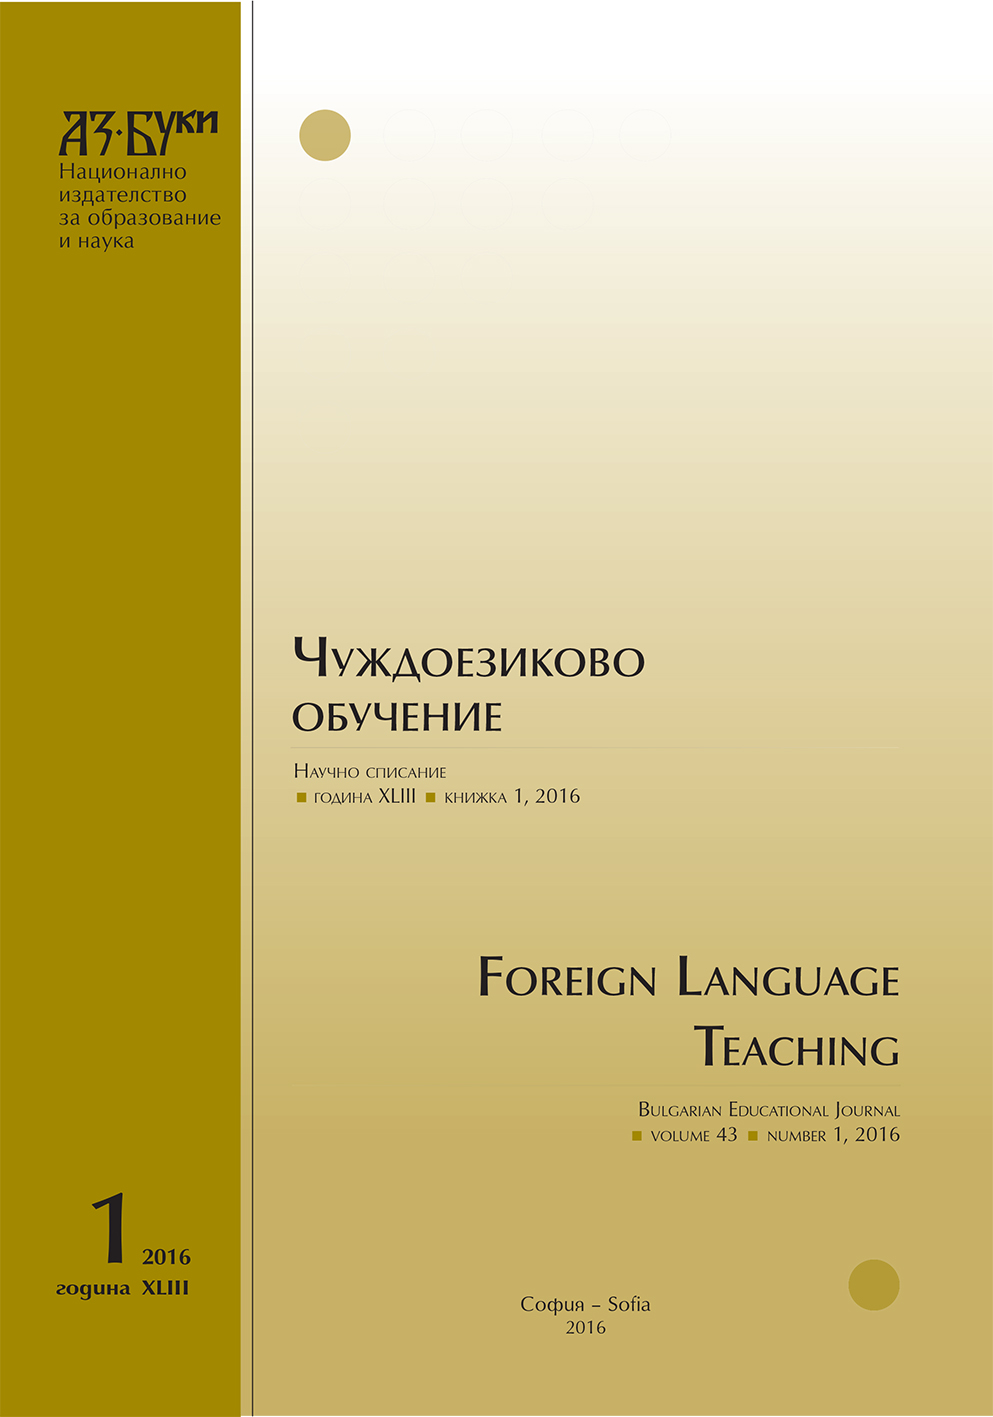 Foreign Languages in Bulgarian Law Cover Image